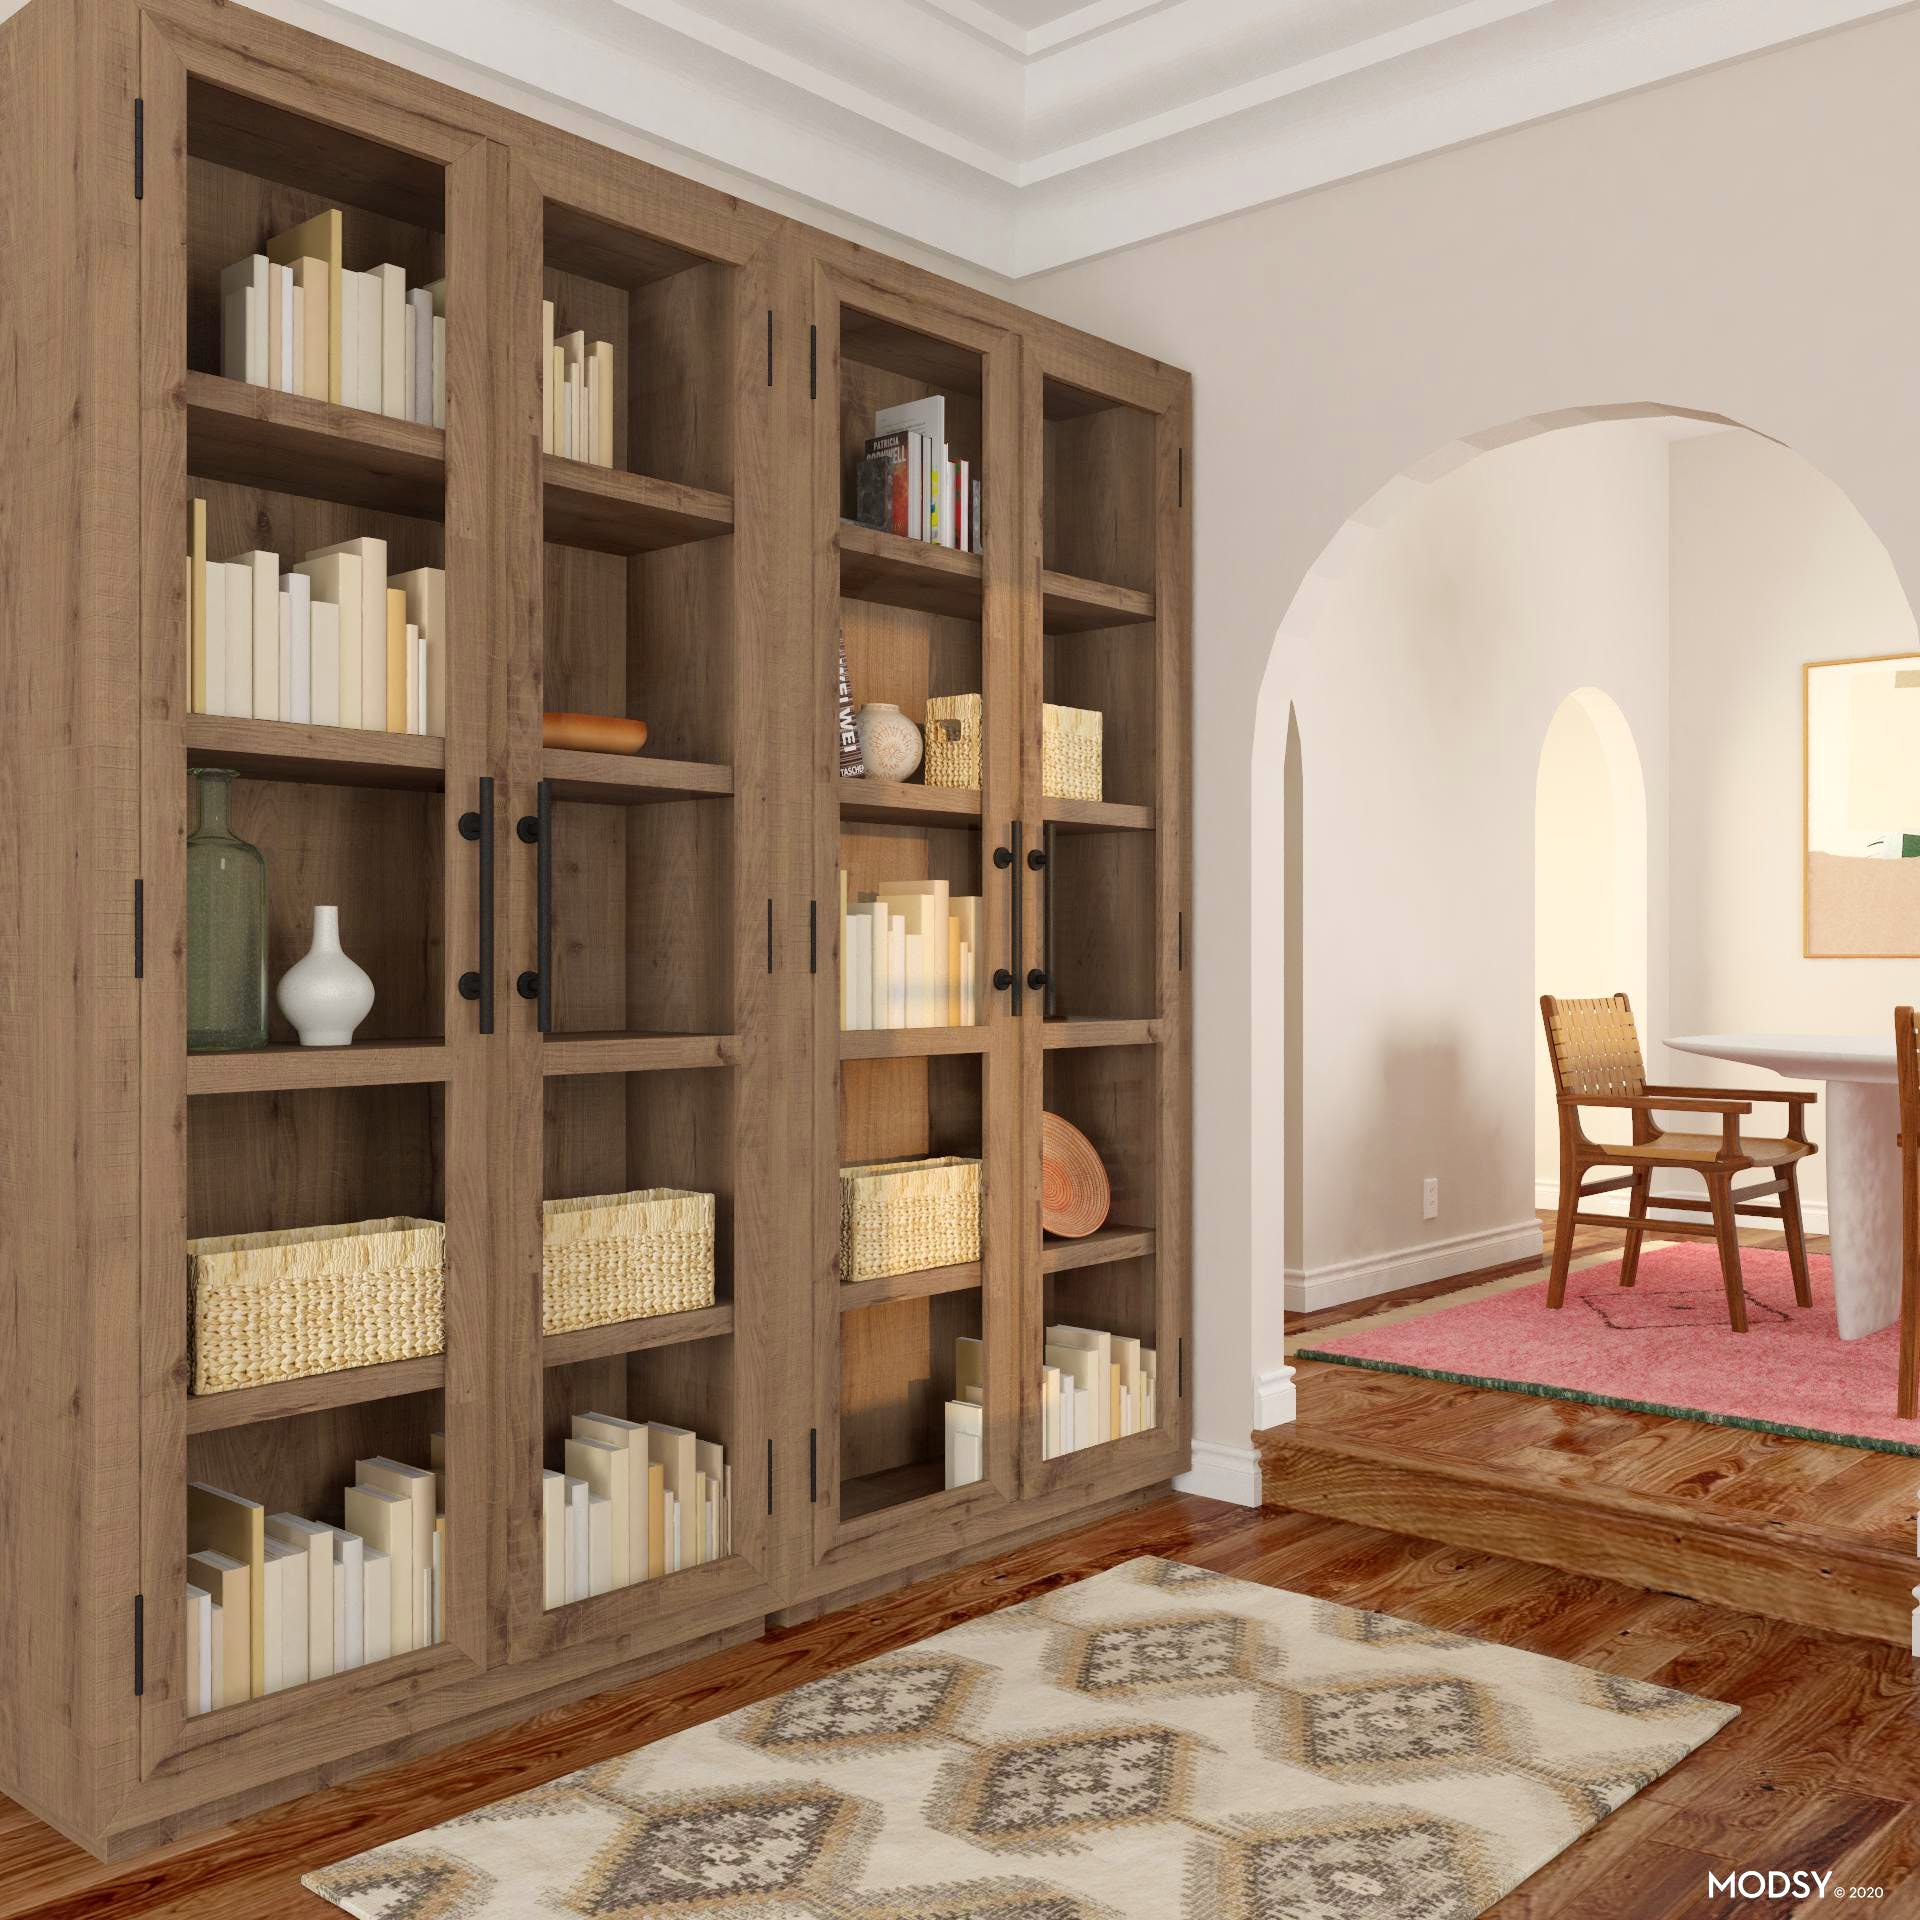 Traditional Bookcase in Raw Wood Finish